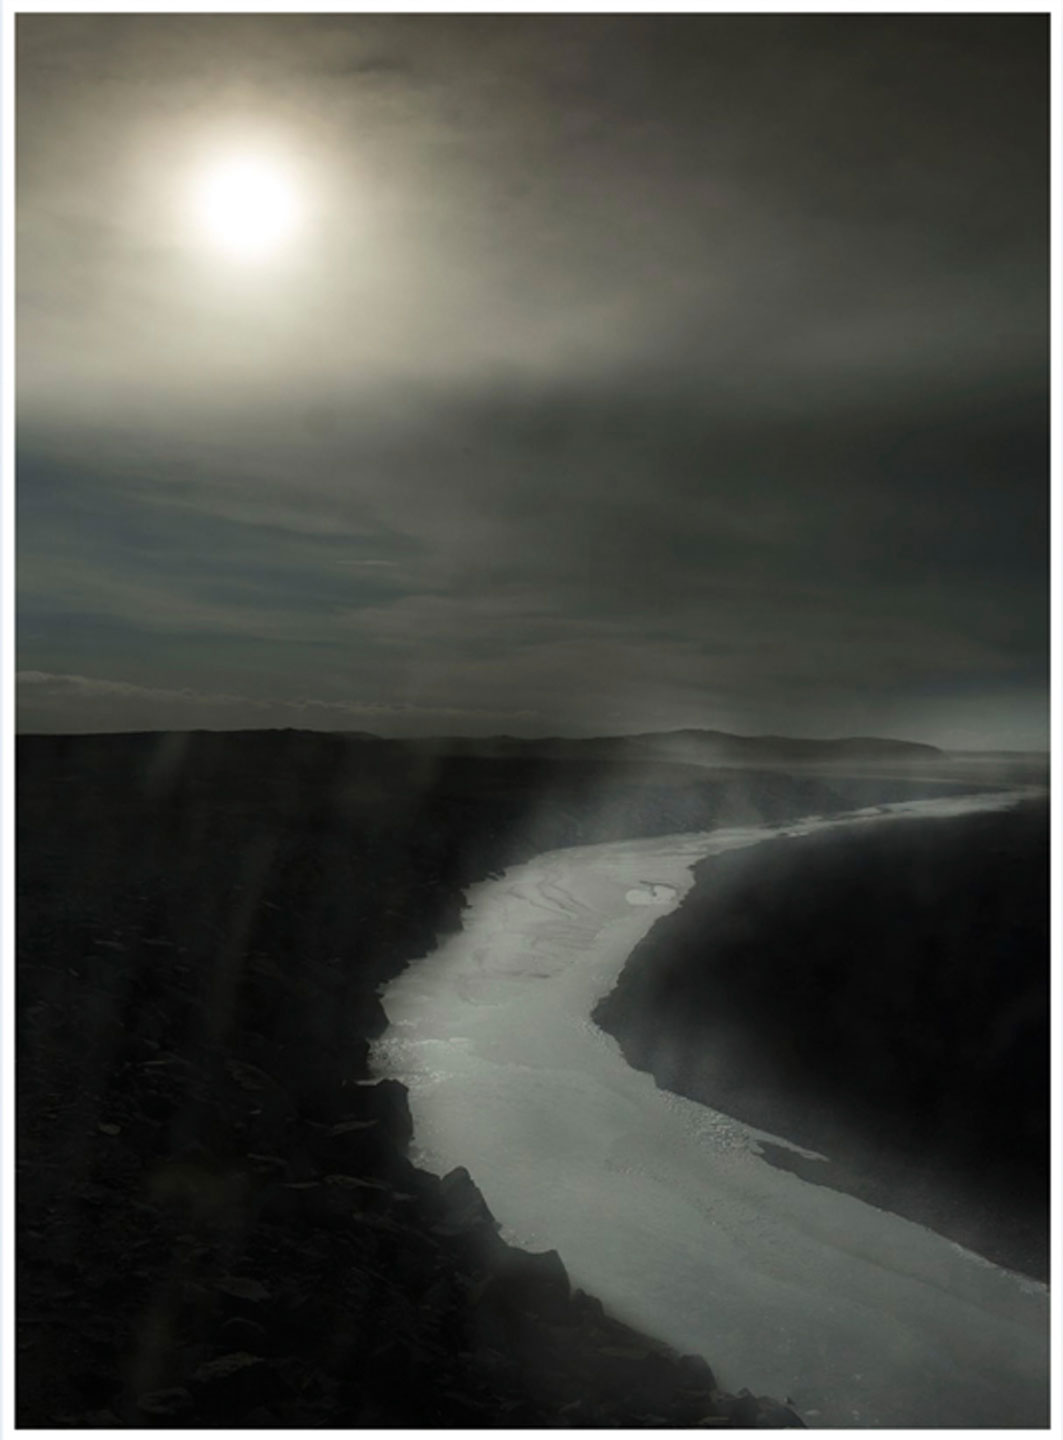 Todd Hido: Bright Black World, Special Limited Edition of 25 (with Original Archival Pigment Print) [SIGNED]